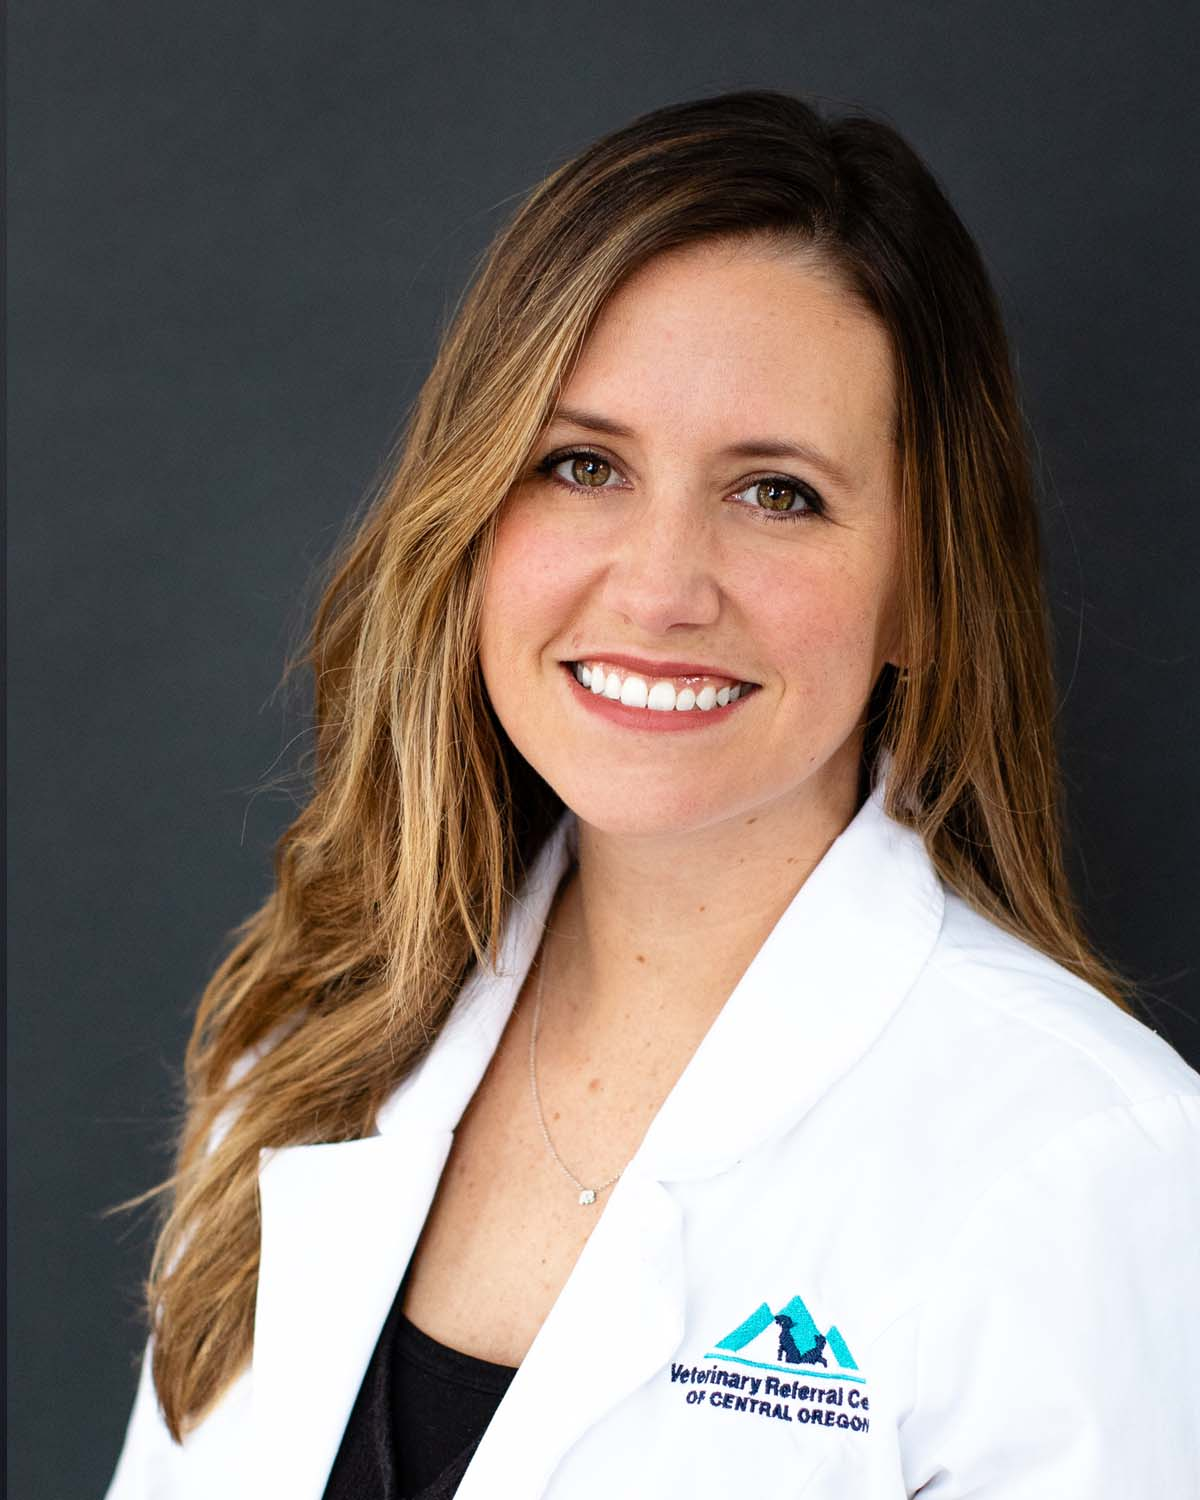 Dr. Taylor Stockdale Bend veterinary emergency doctor